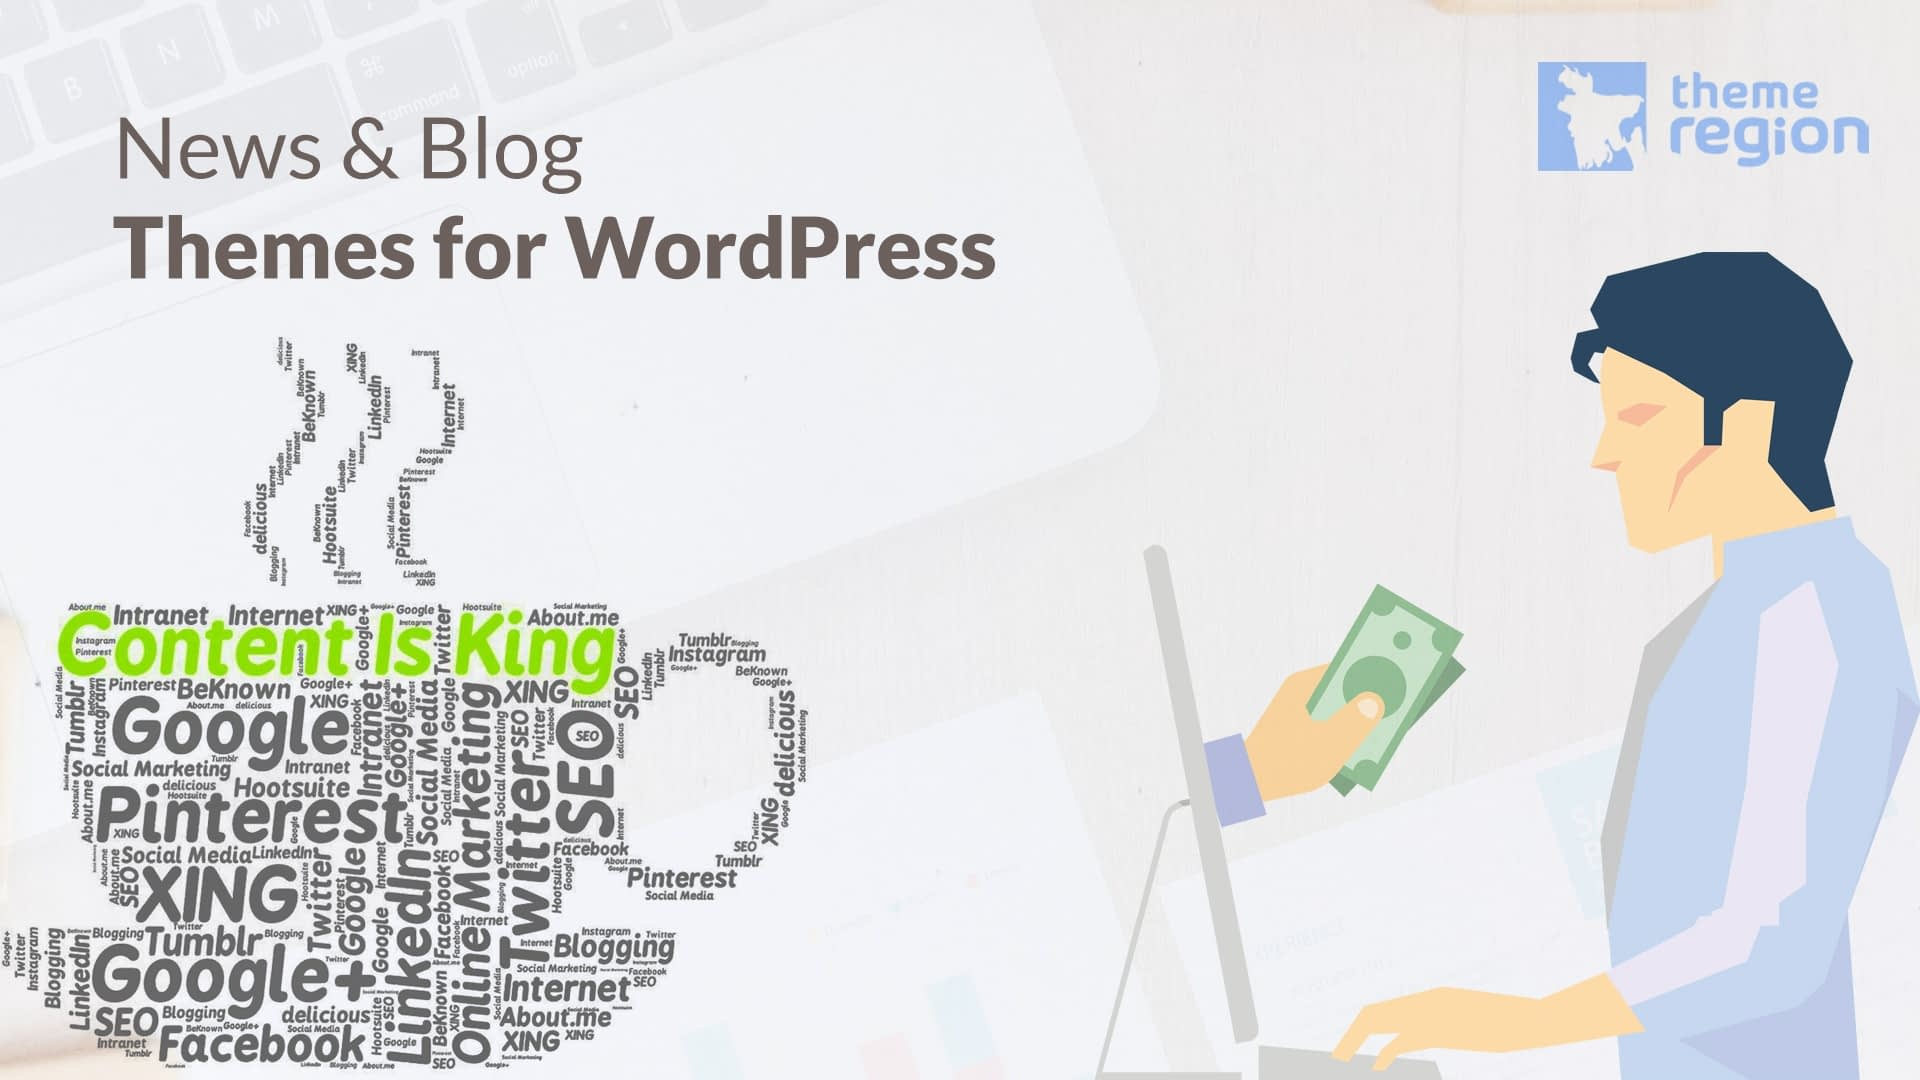 7 News Blog Themes for WordPress – 100% Money Makers